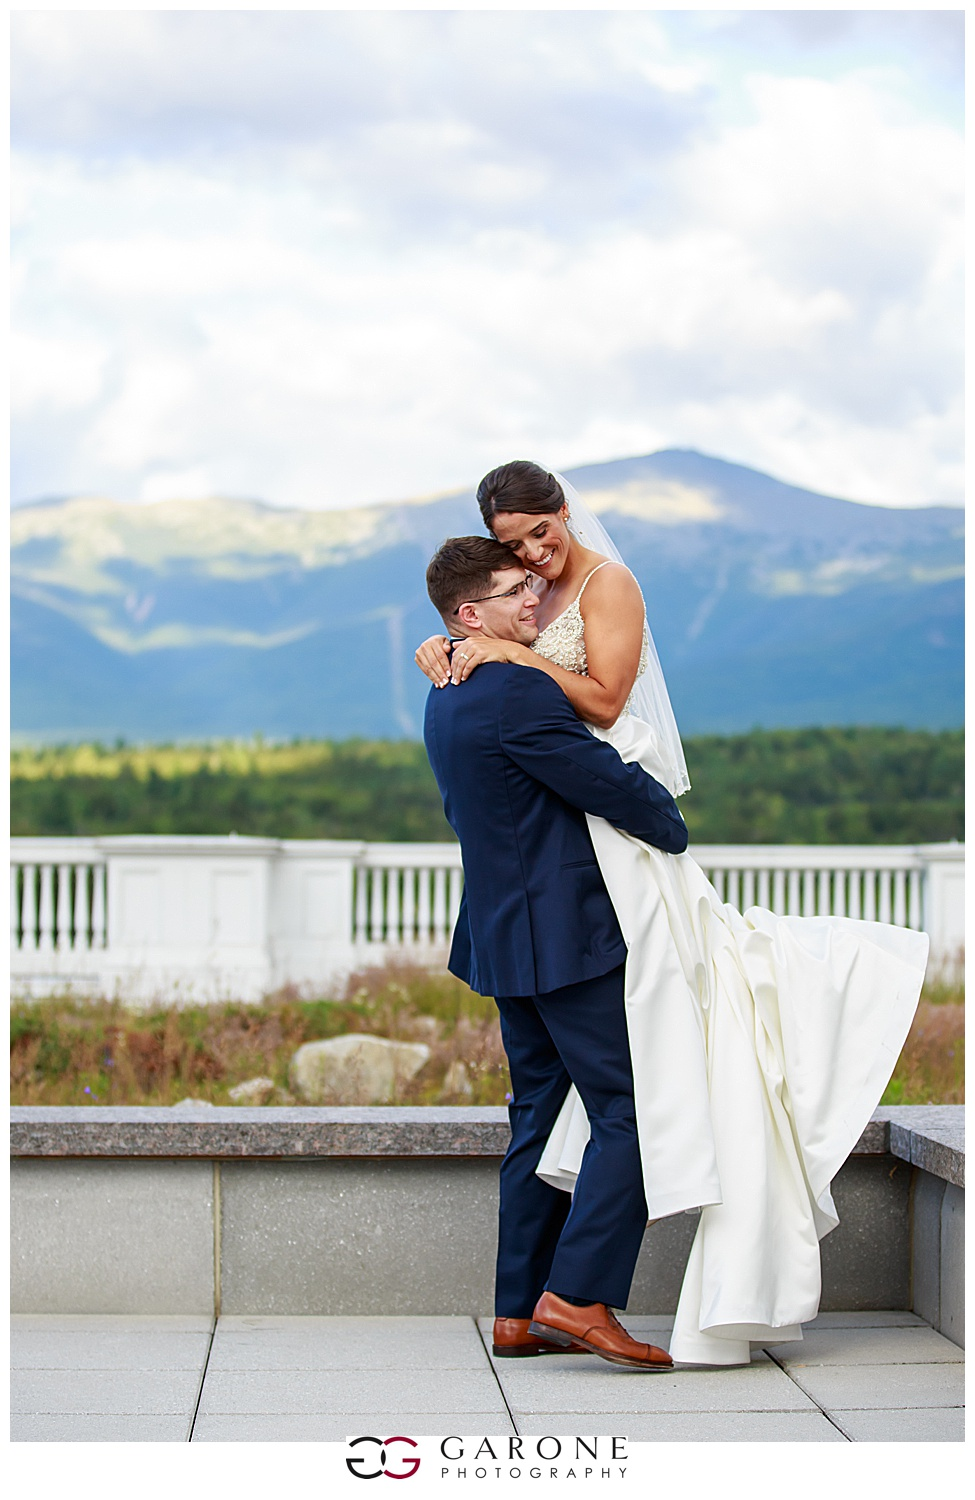 Omni_Mount_Washington_hotel_Wedding_White_Mountain_Wedding_Garone_Photography_0031.jpg